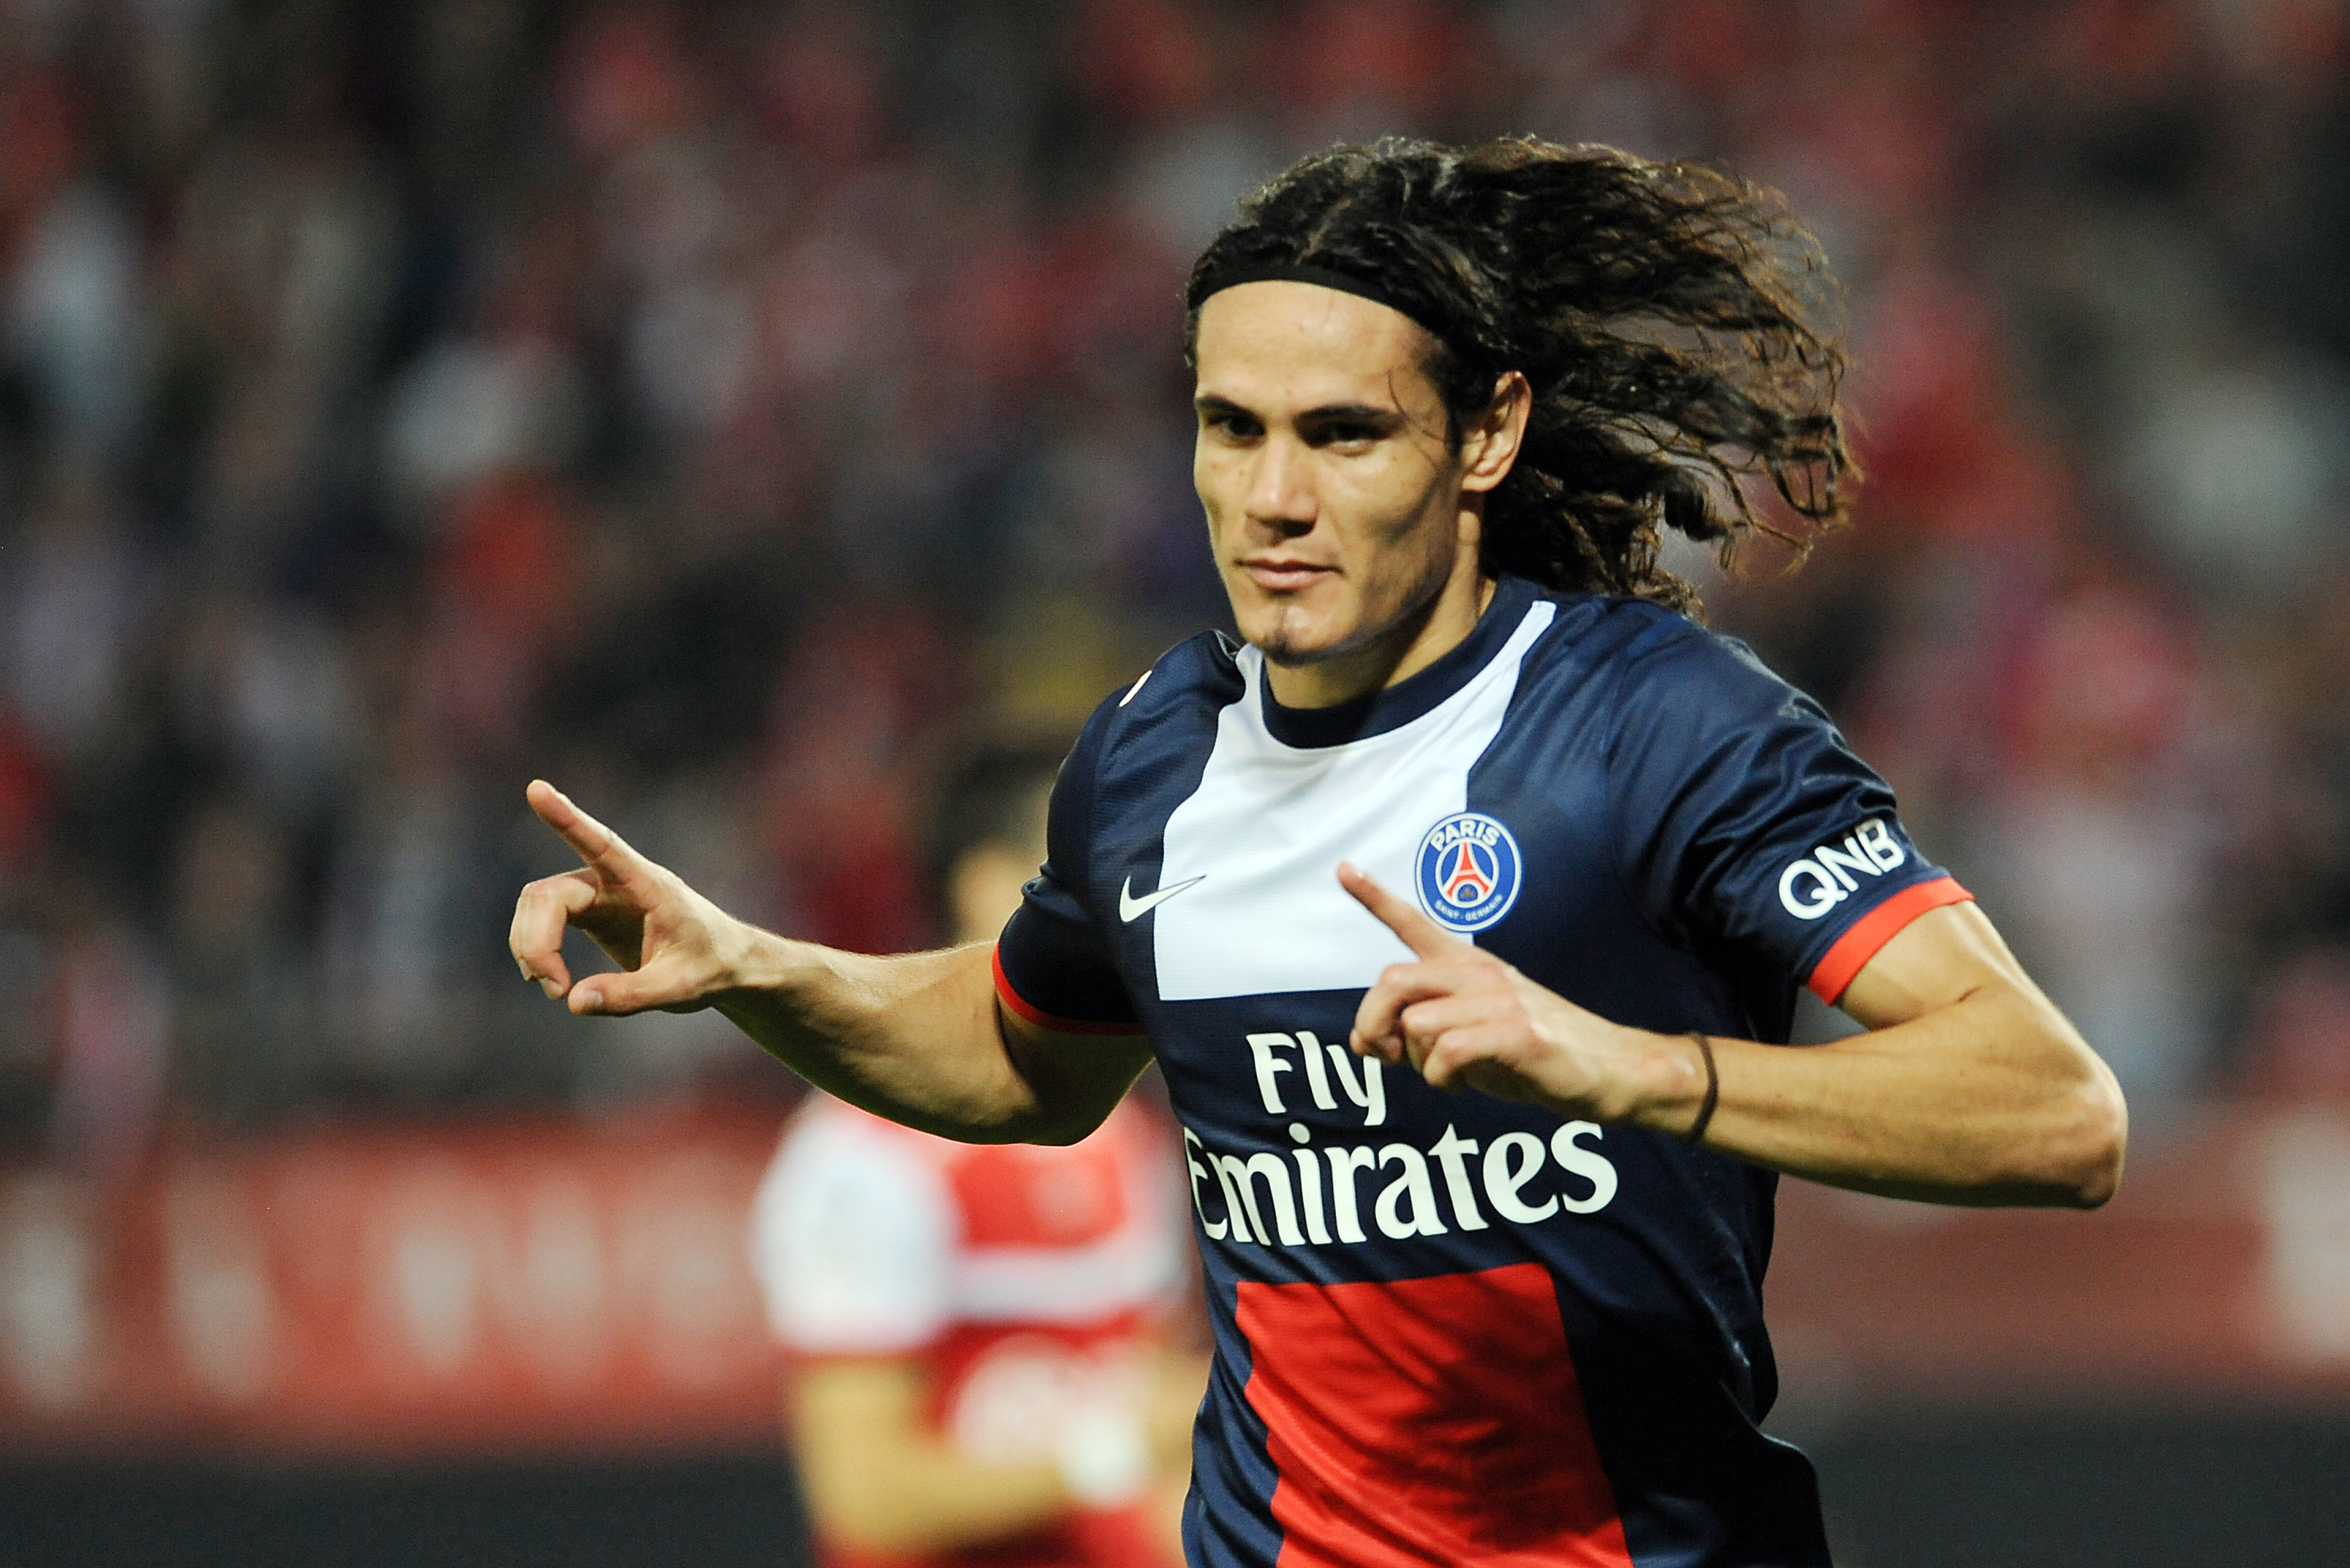 Ligue 1: Valenciennes 0 Paris Saint Germain 1